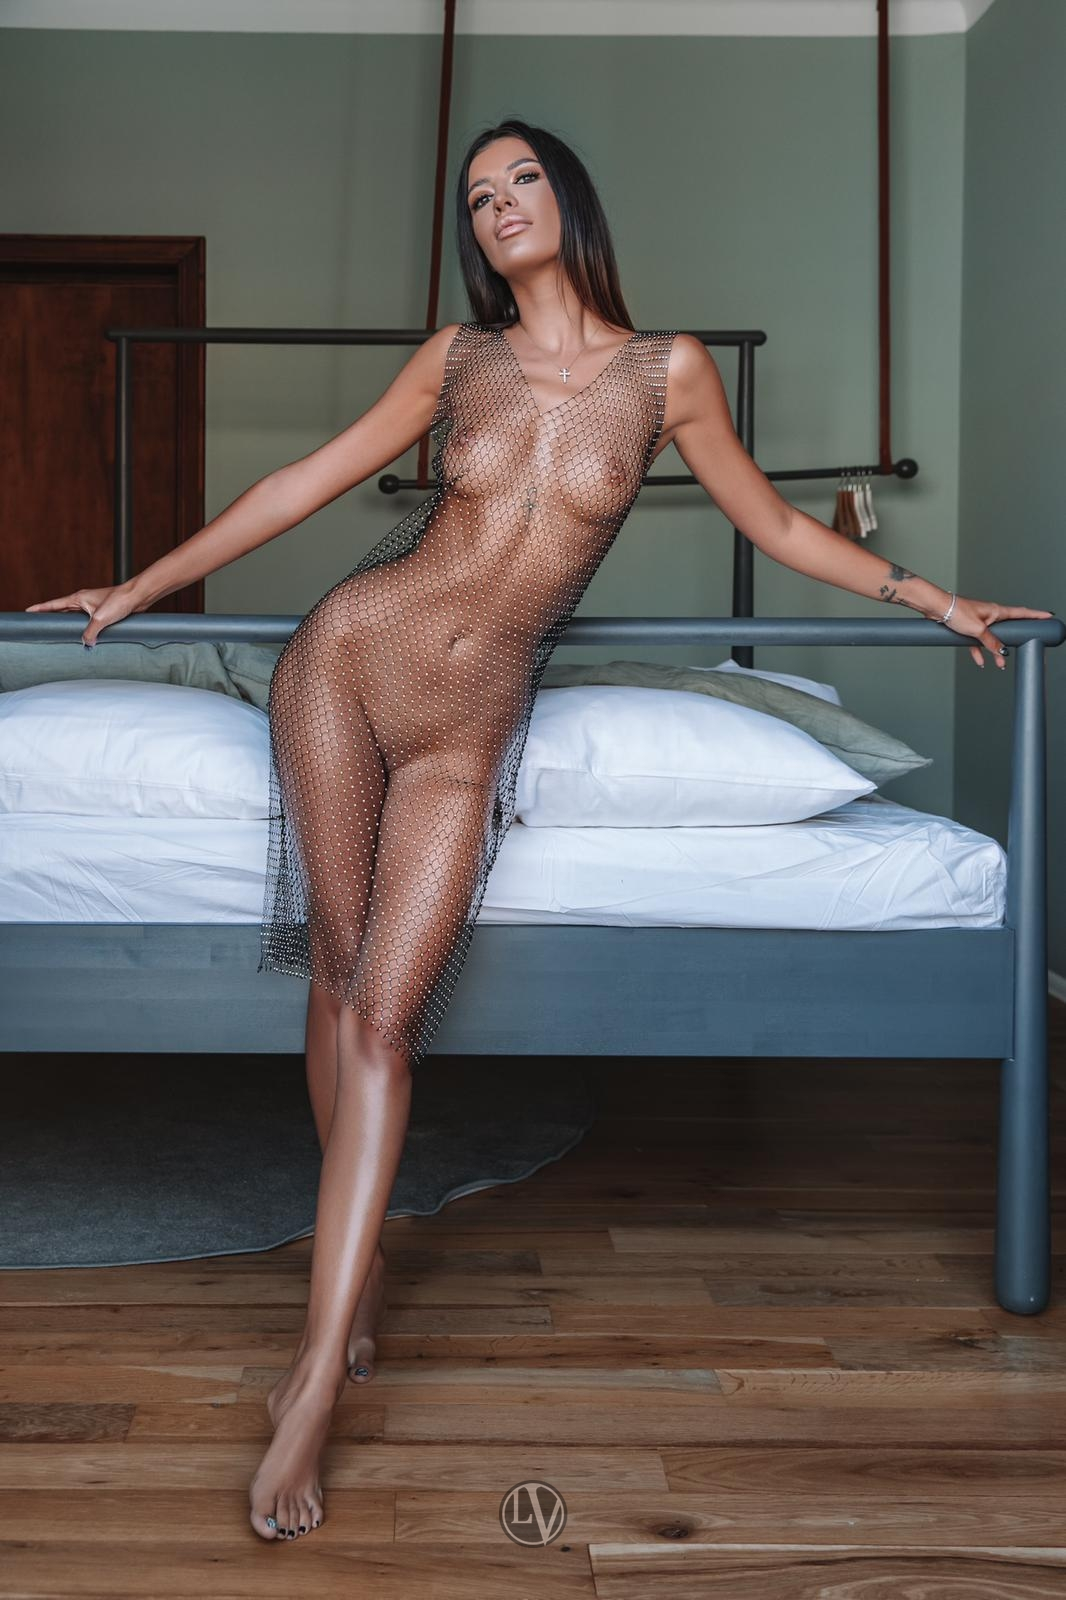 London callgirl Ivanka standing by the bed in a see-through dress